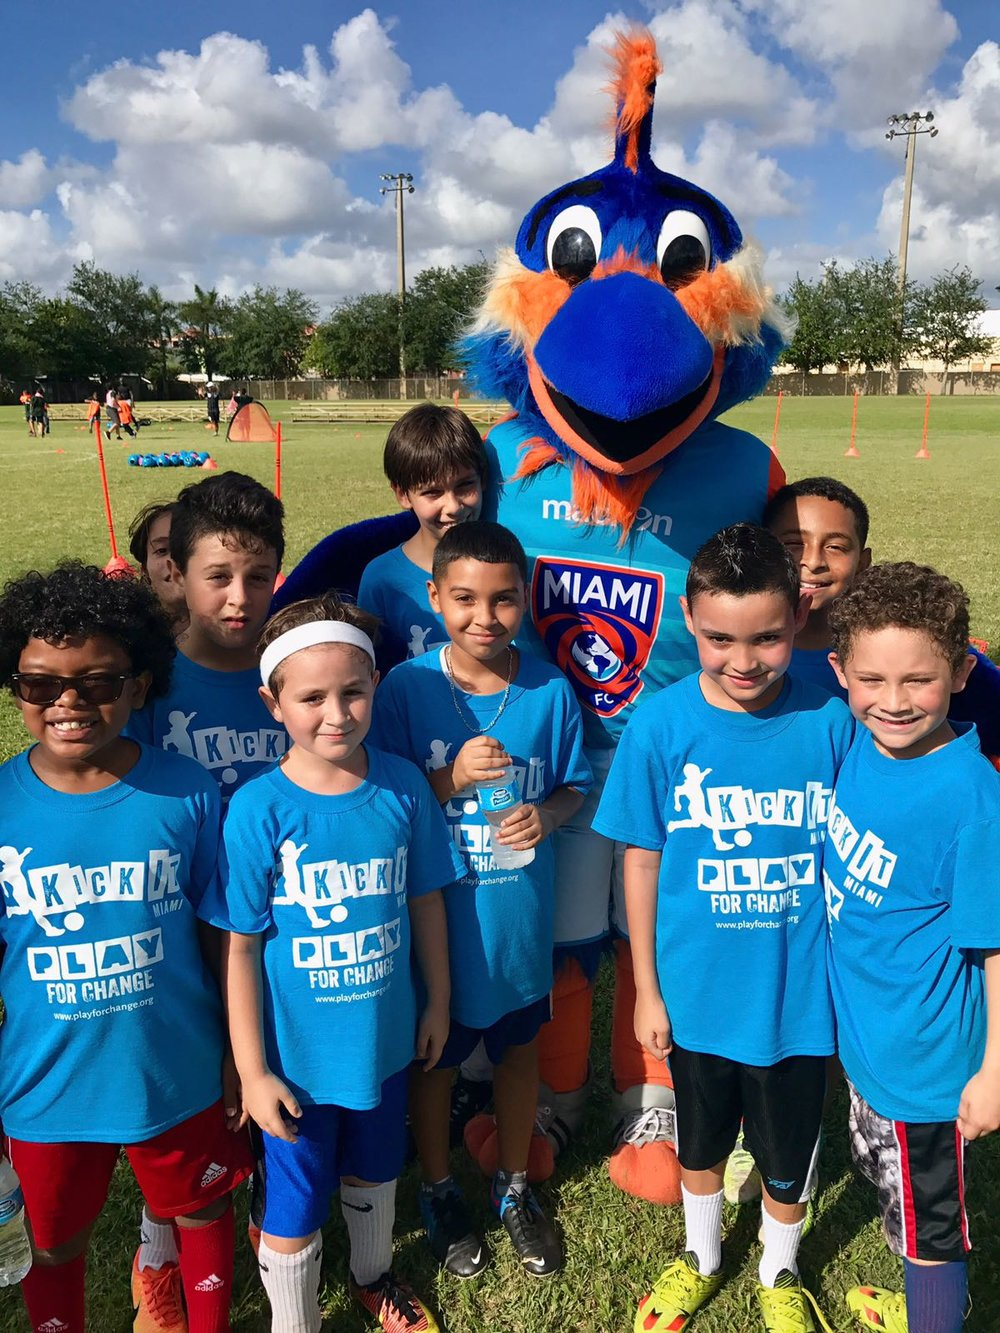 Miami FC mascot with children from Kick It